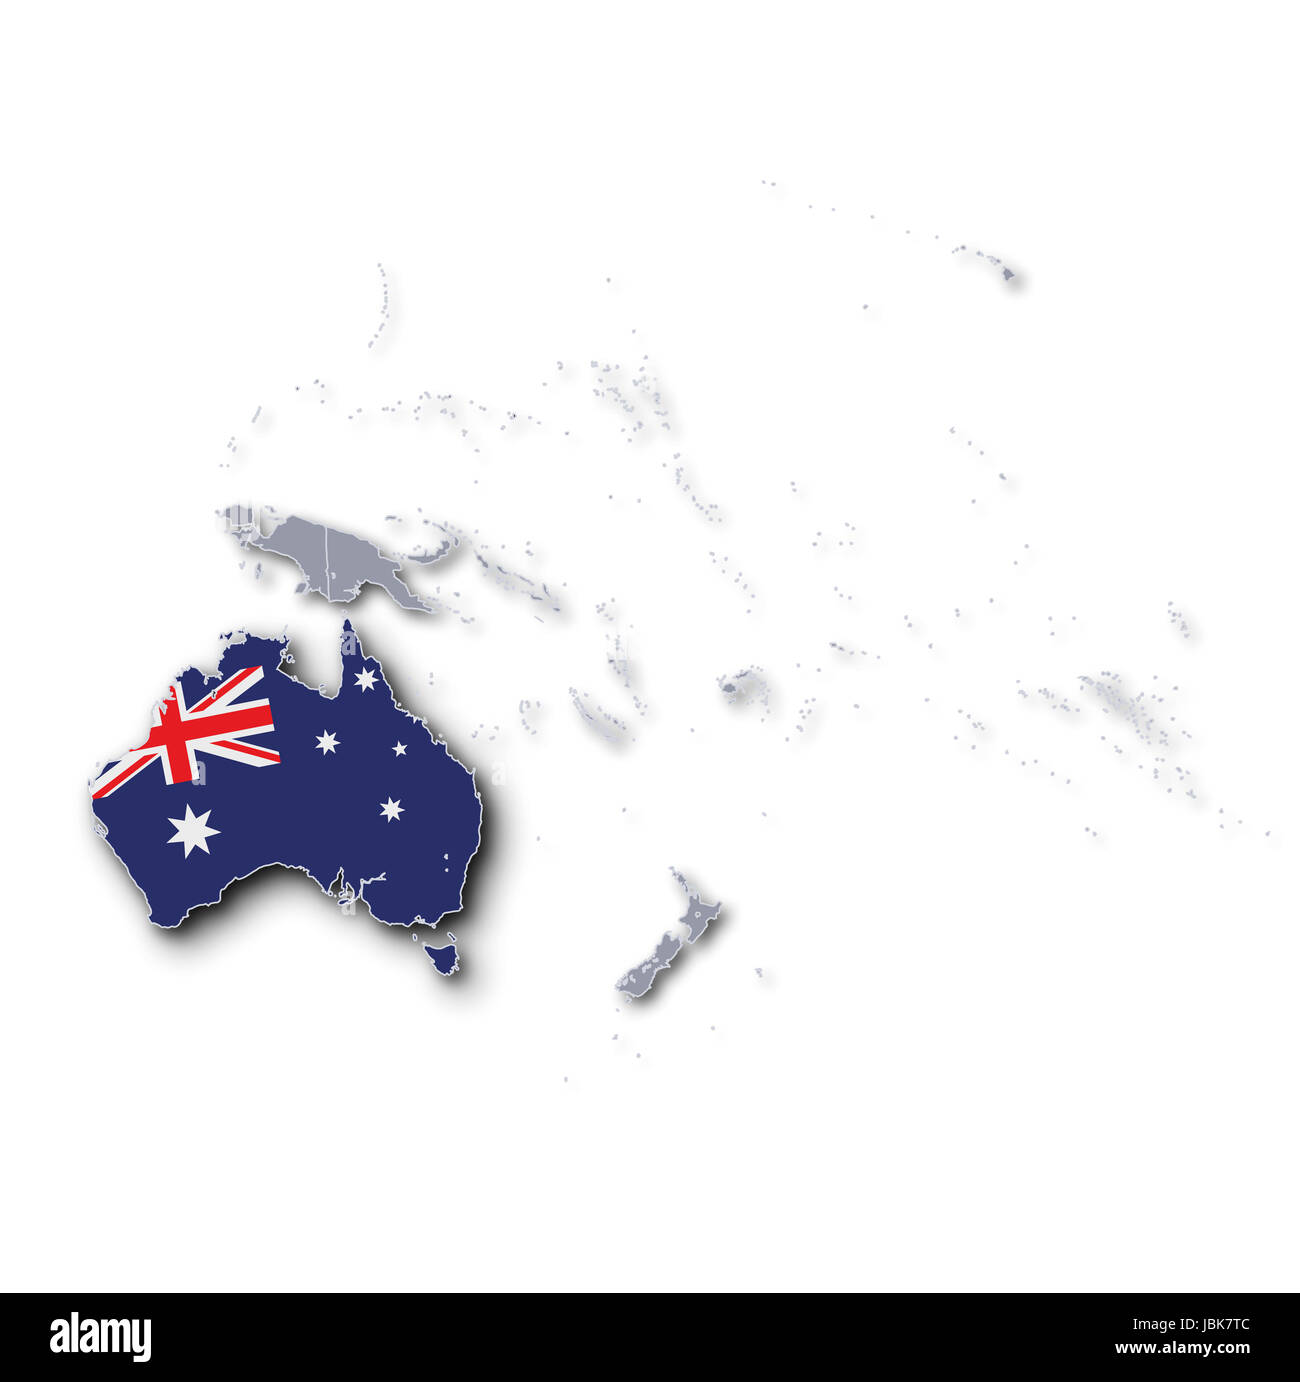 Australia And Pacific Map.Pacific Map Australia Stock Photo 144867420 Alamy